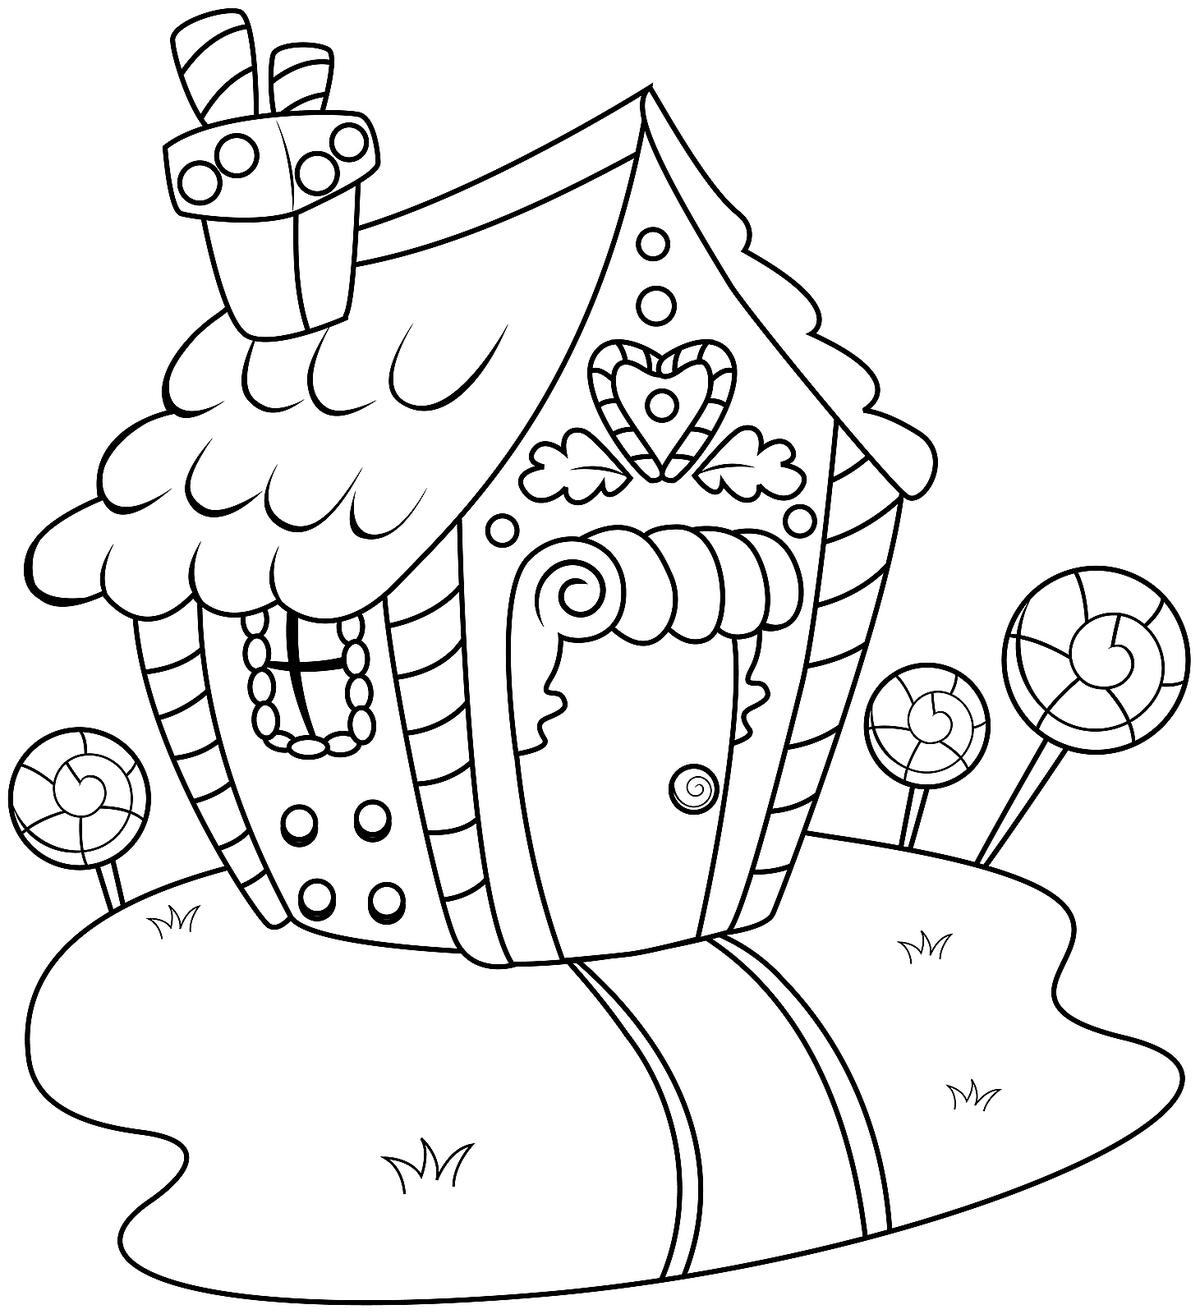 Gingerbread House Coloring Pages: Printable Coloring